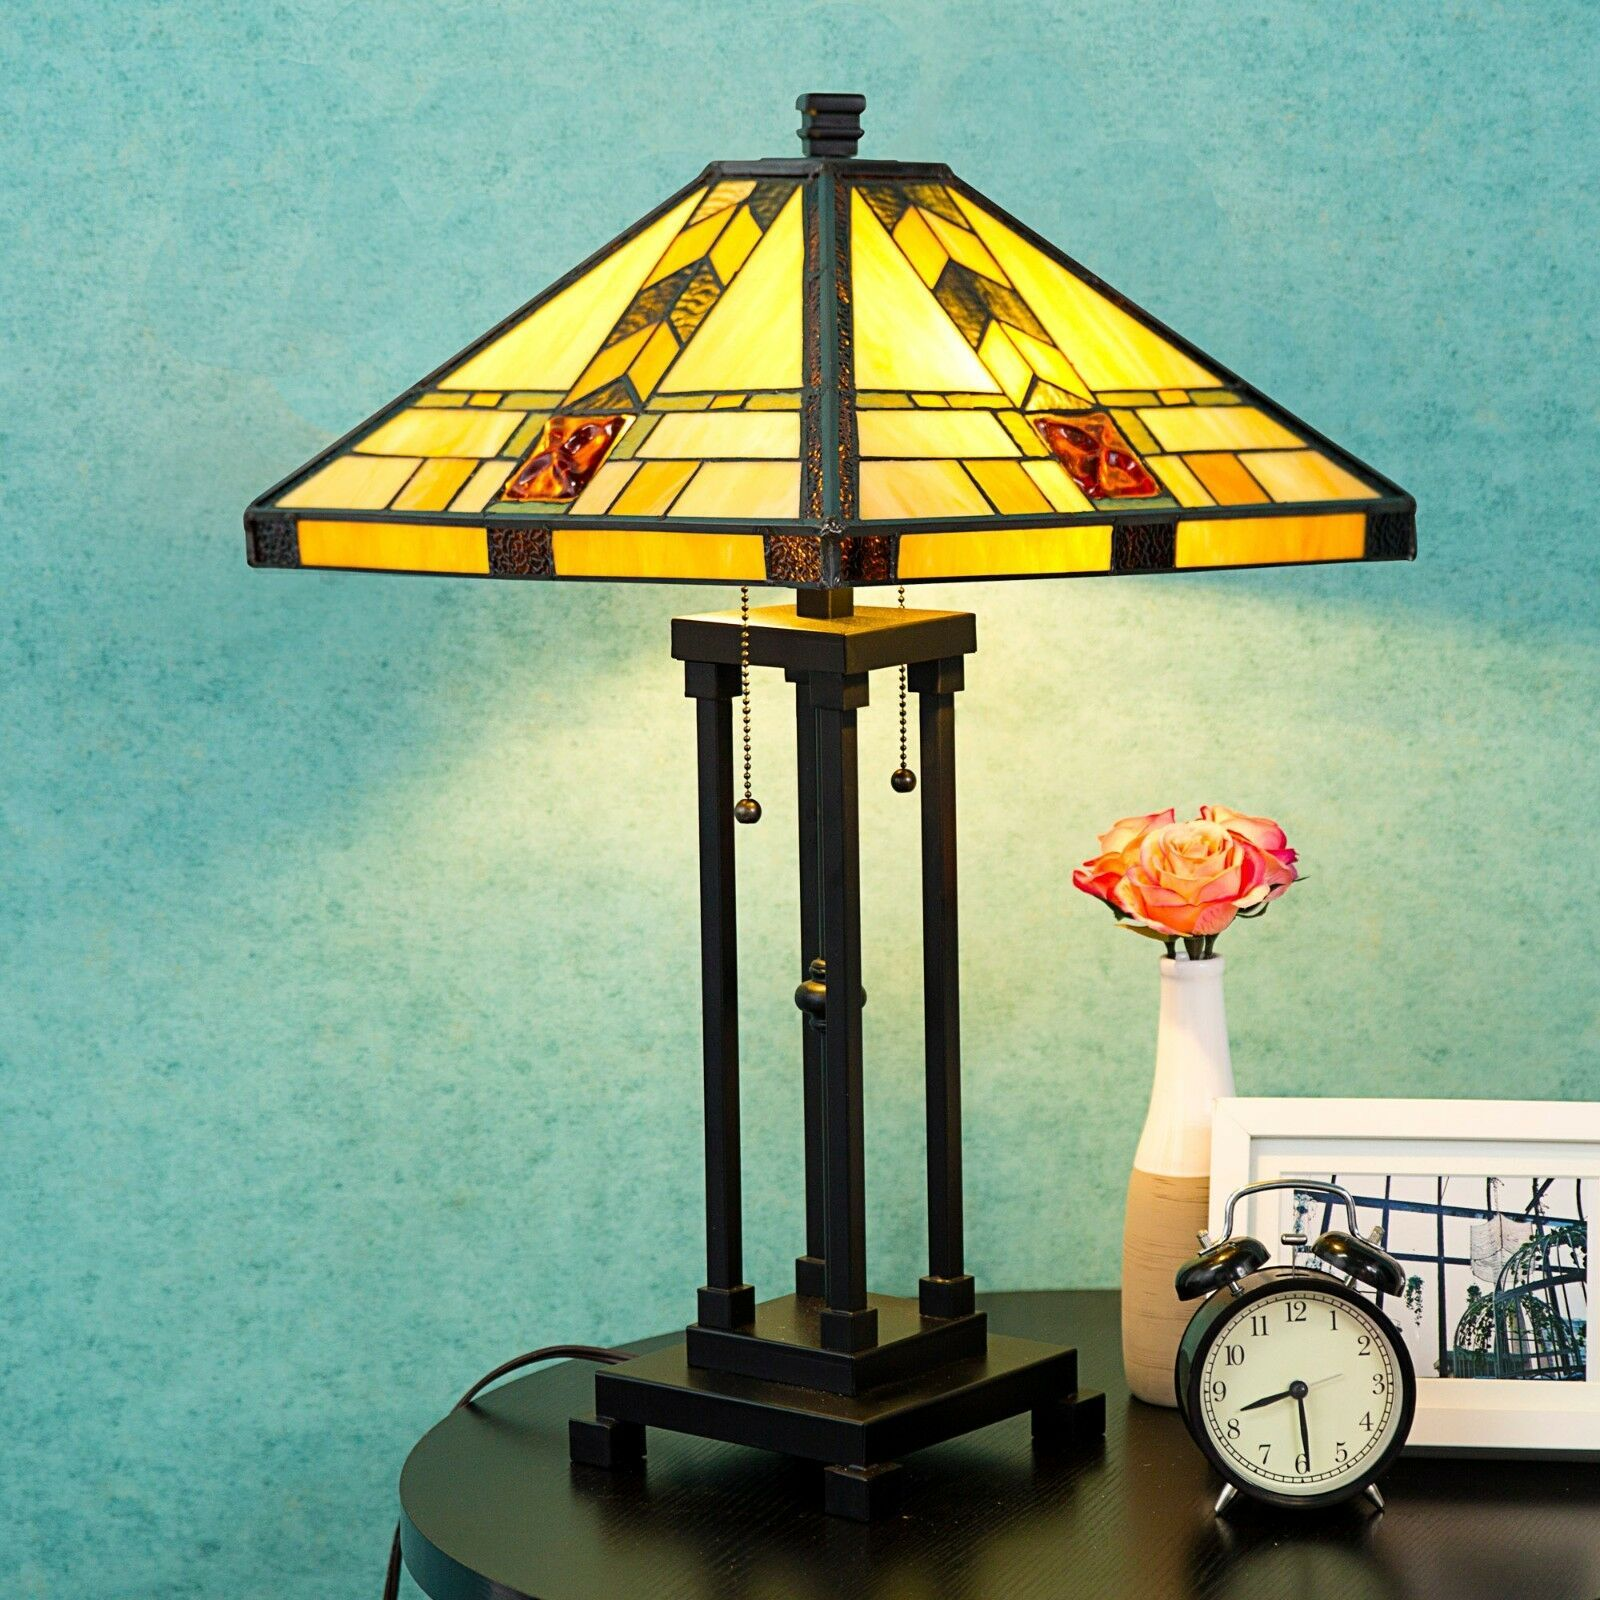 Tiffany Style Lamp Table Lamp Mission Double Lit Design Lighting Wood Home Decor Tiffany Lamps Ide Tiffany Style Table Lamps Tiffany Style Lamp Table Lamp